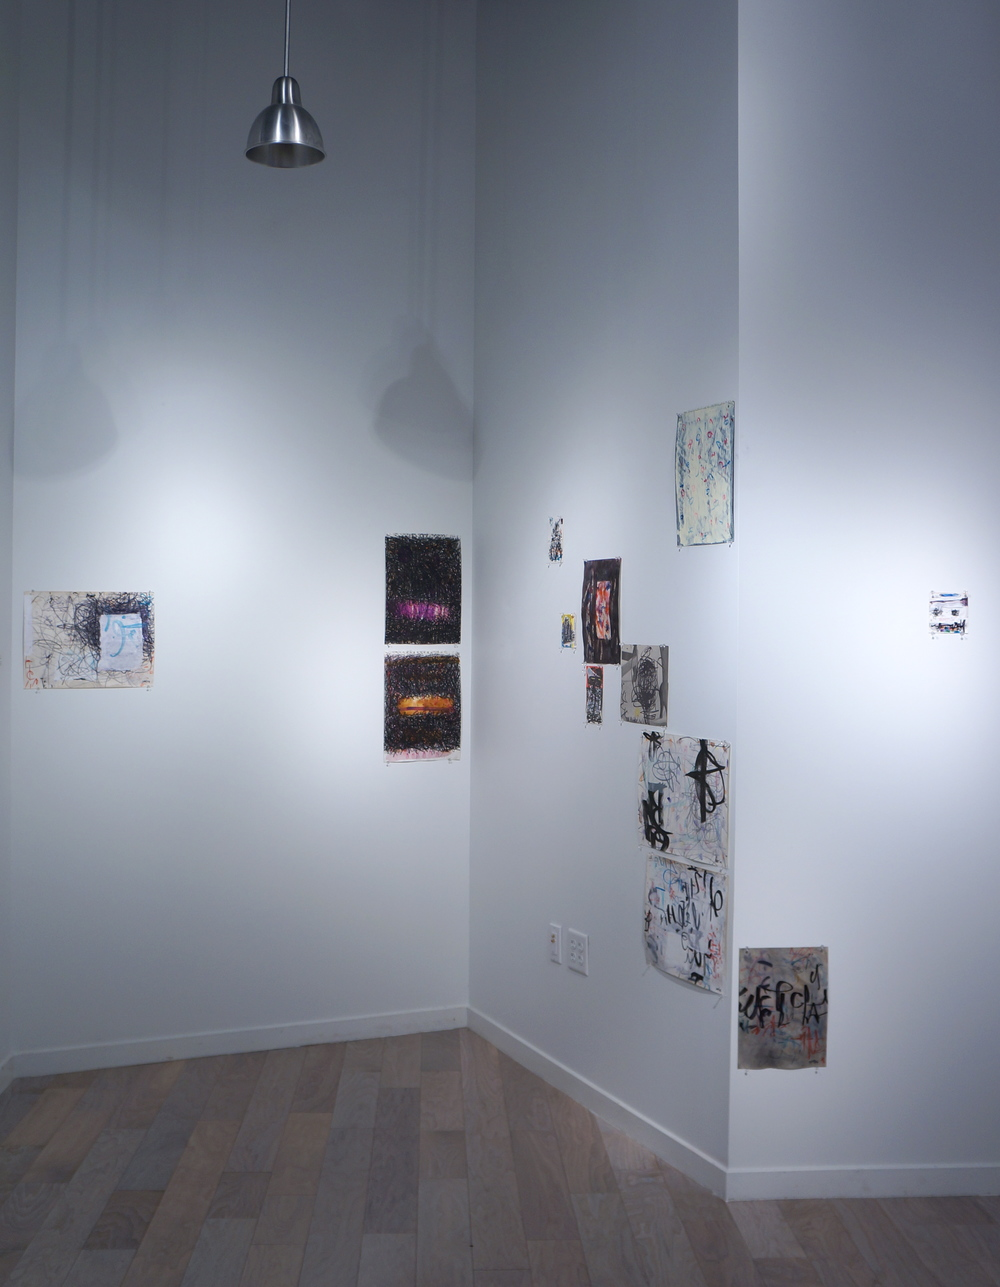 Gallery View 7, Daniel Kaniess